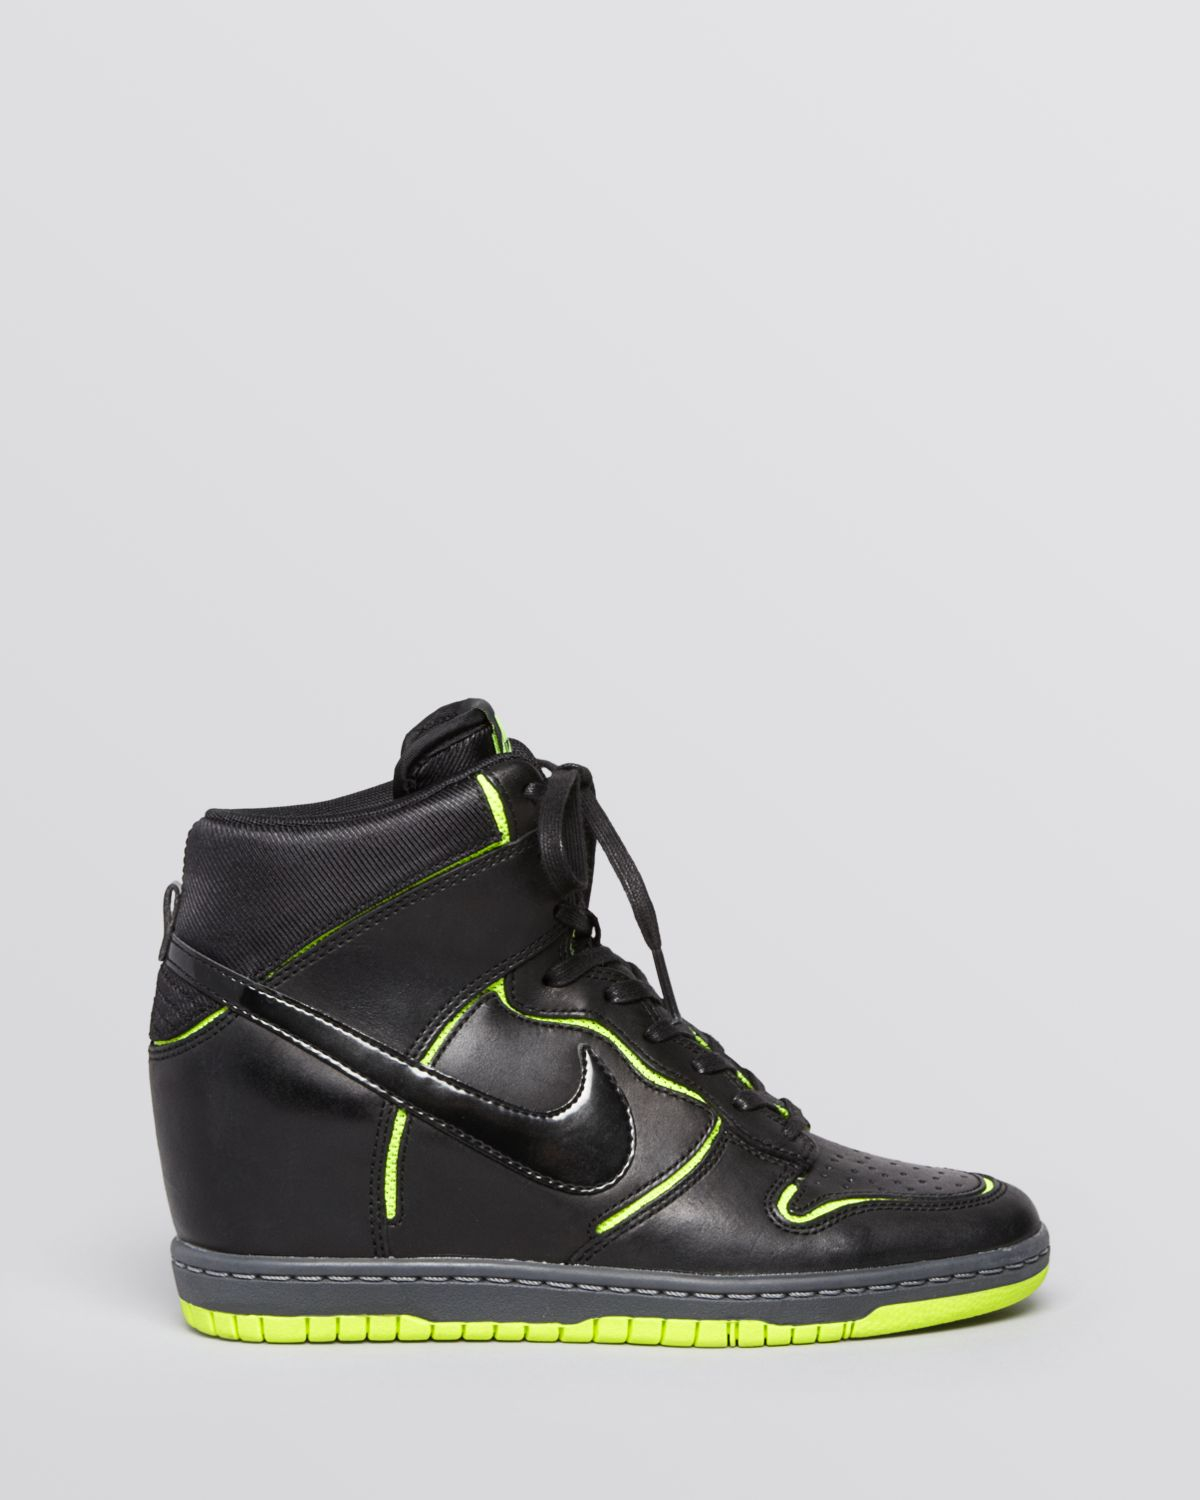 Nike Lace Up High Top Wedge Sneakers - Womens Dunk Sky Hi -8232